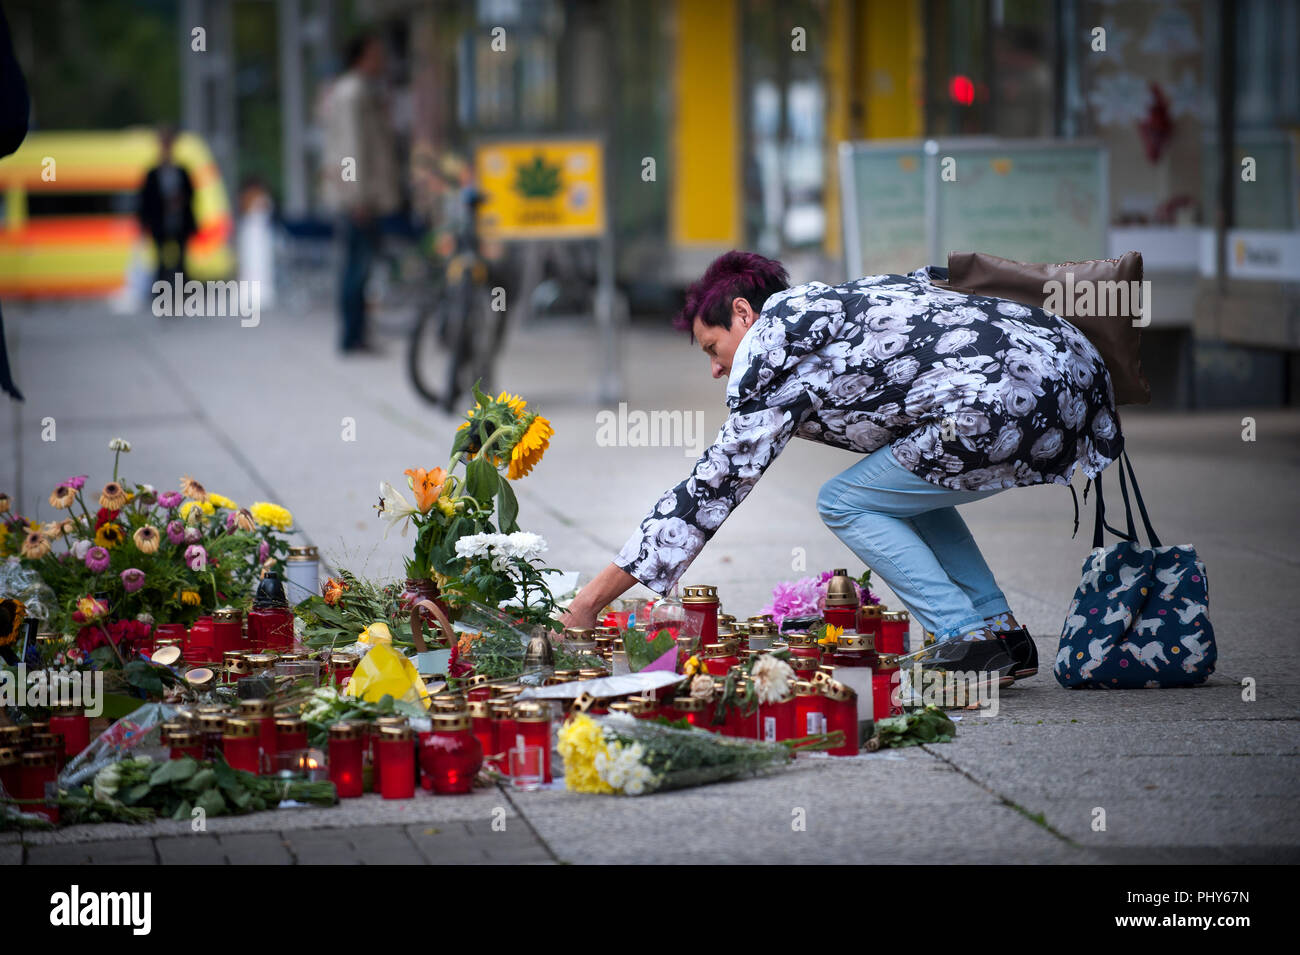 Mourners lay flowers and pay there respects on Brückenstrasse in Chemnitz. The site where a 35 year old German man was stabbed to death. - Stock Image